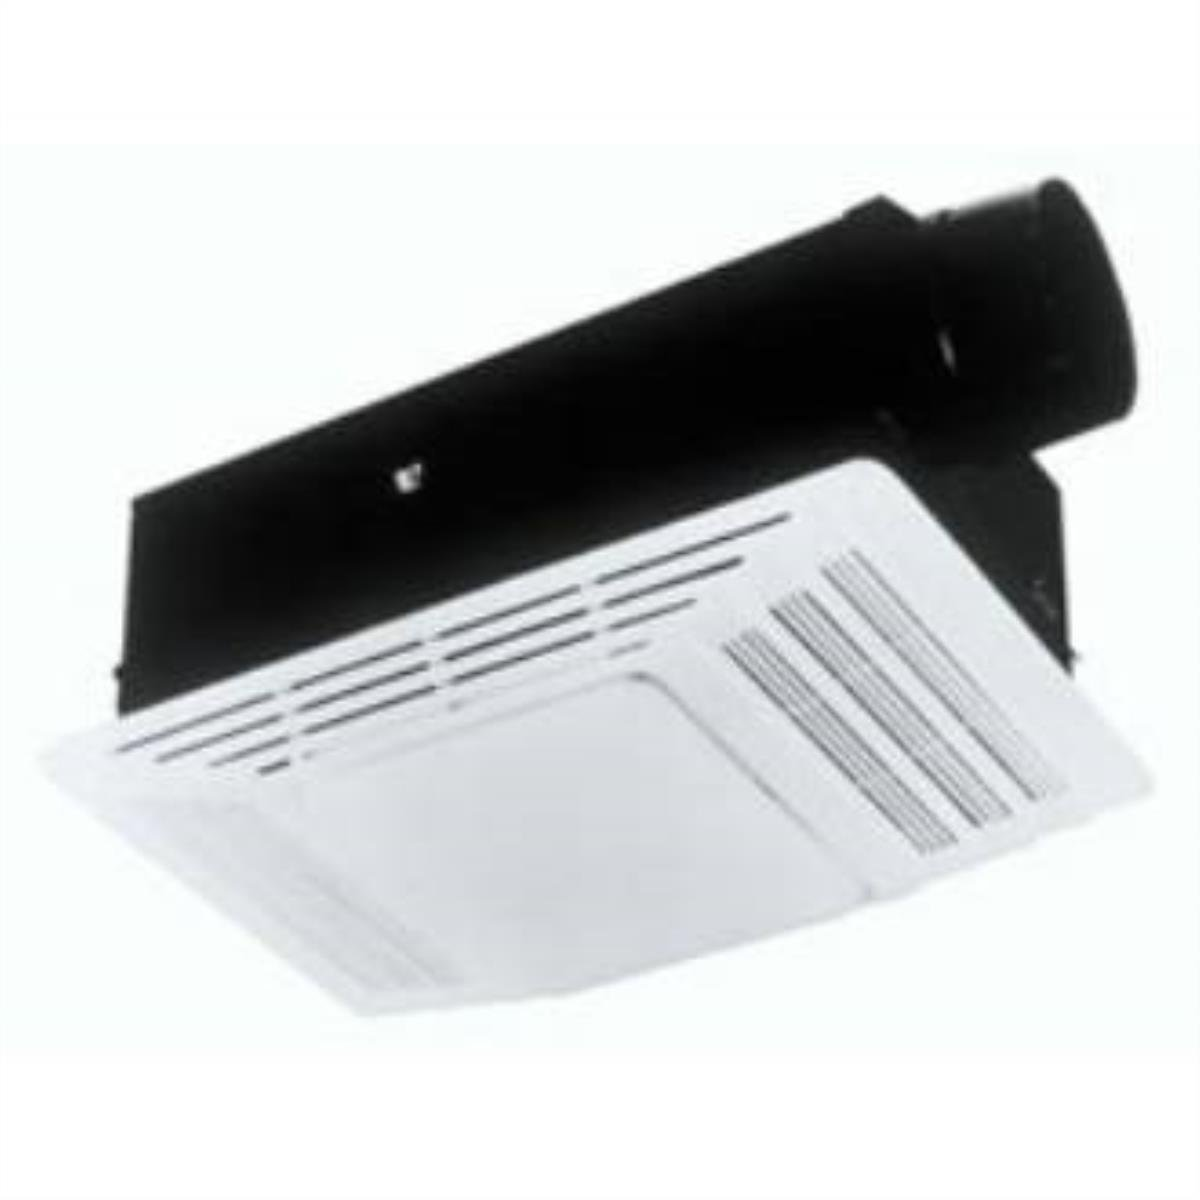 New Broan 655 Heater And Heater Bath Fan With Light Combination